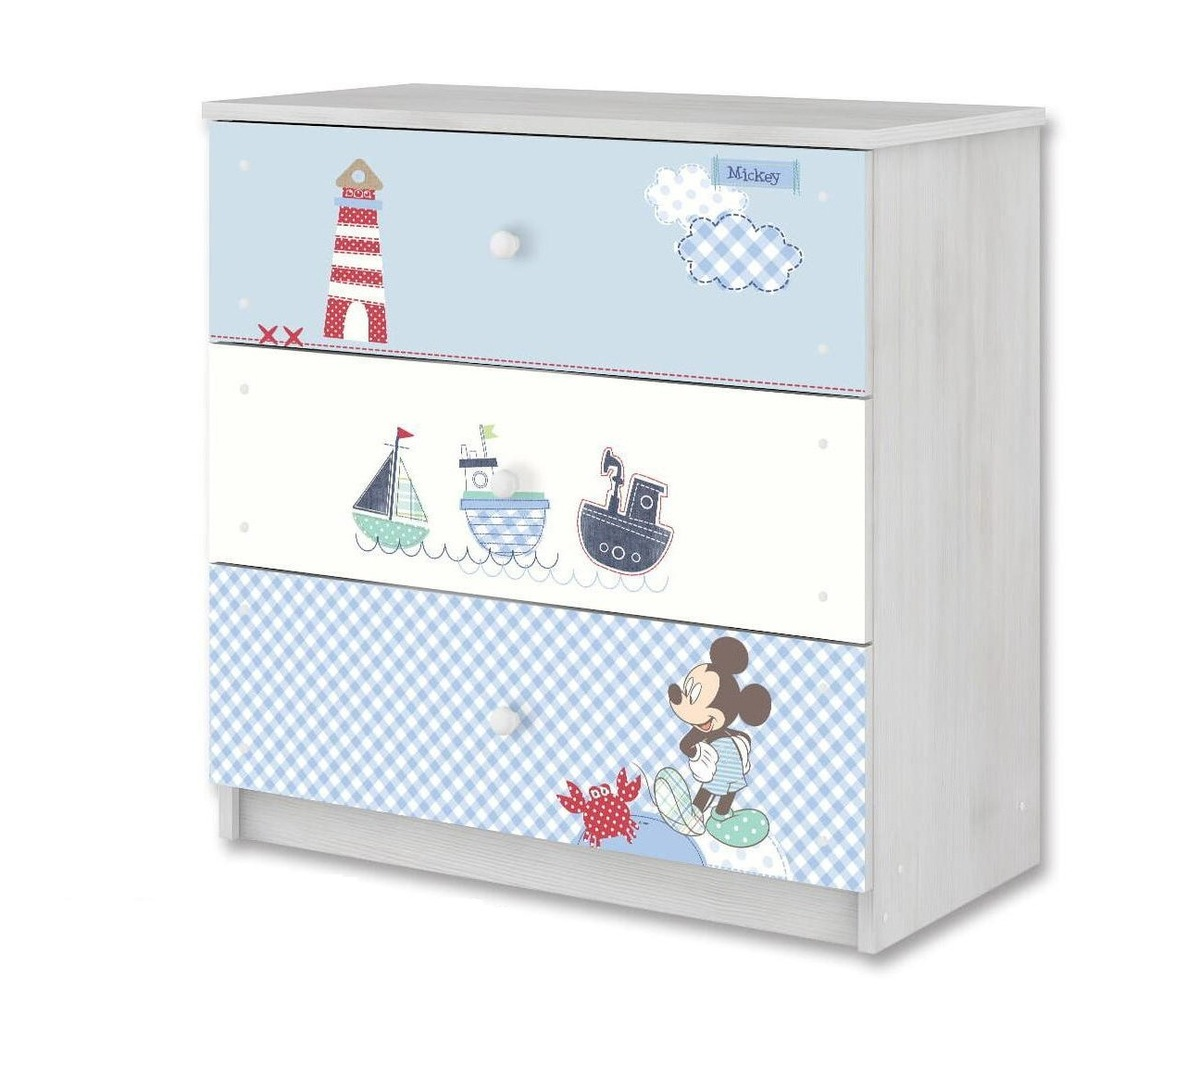 Ourbaby chest of drawers Mickey Mouse